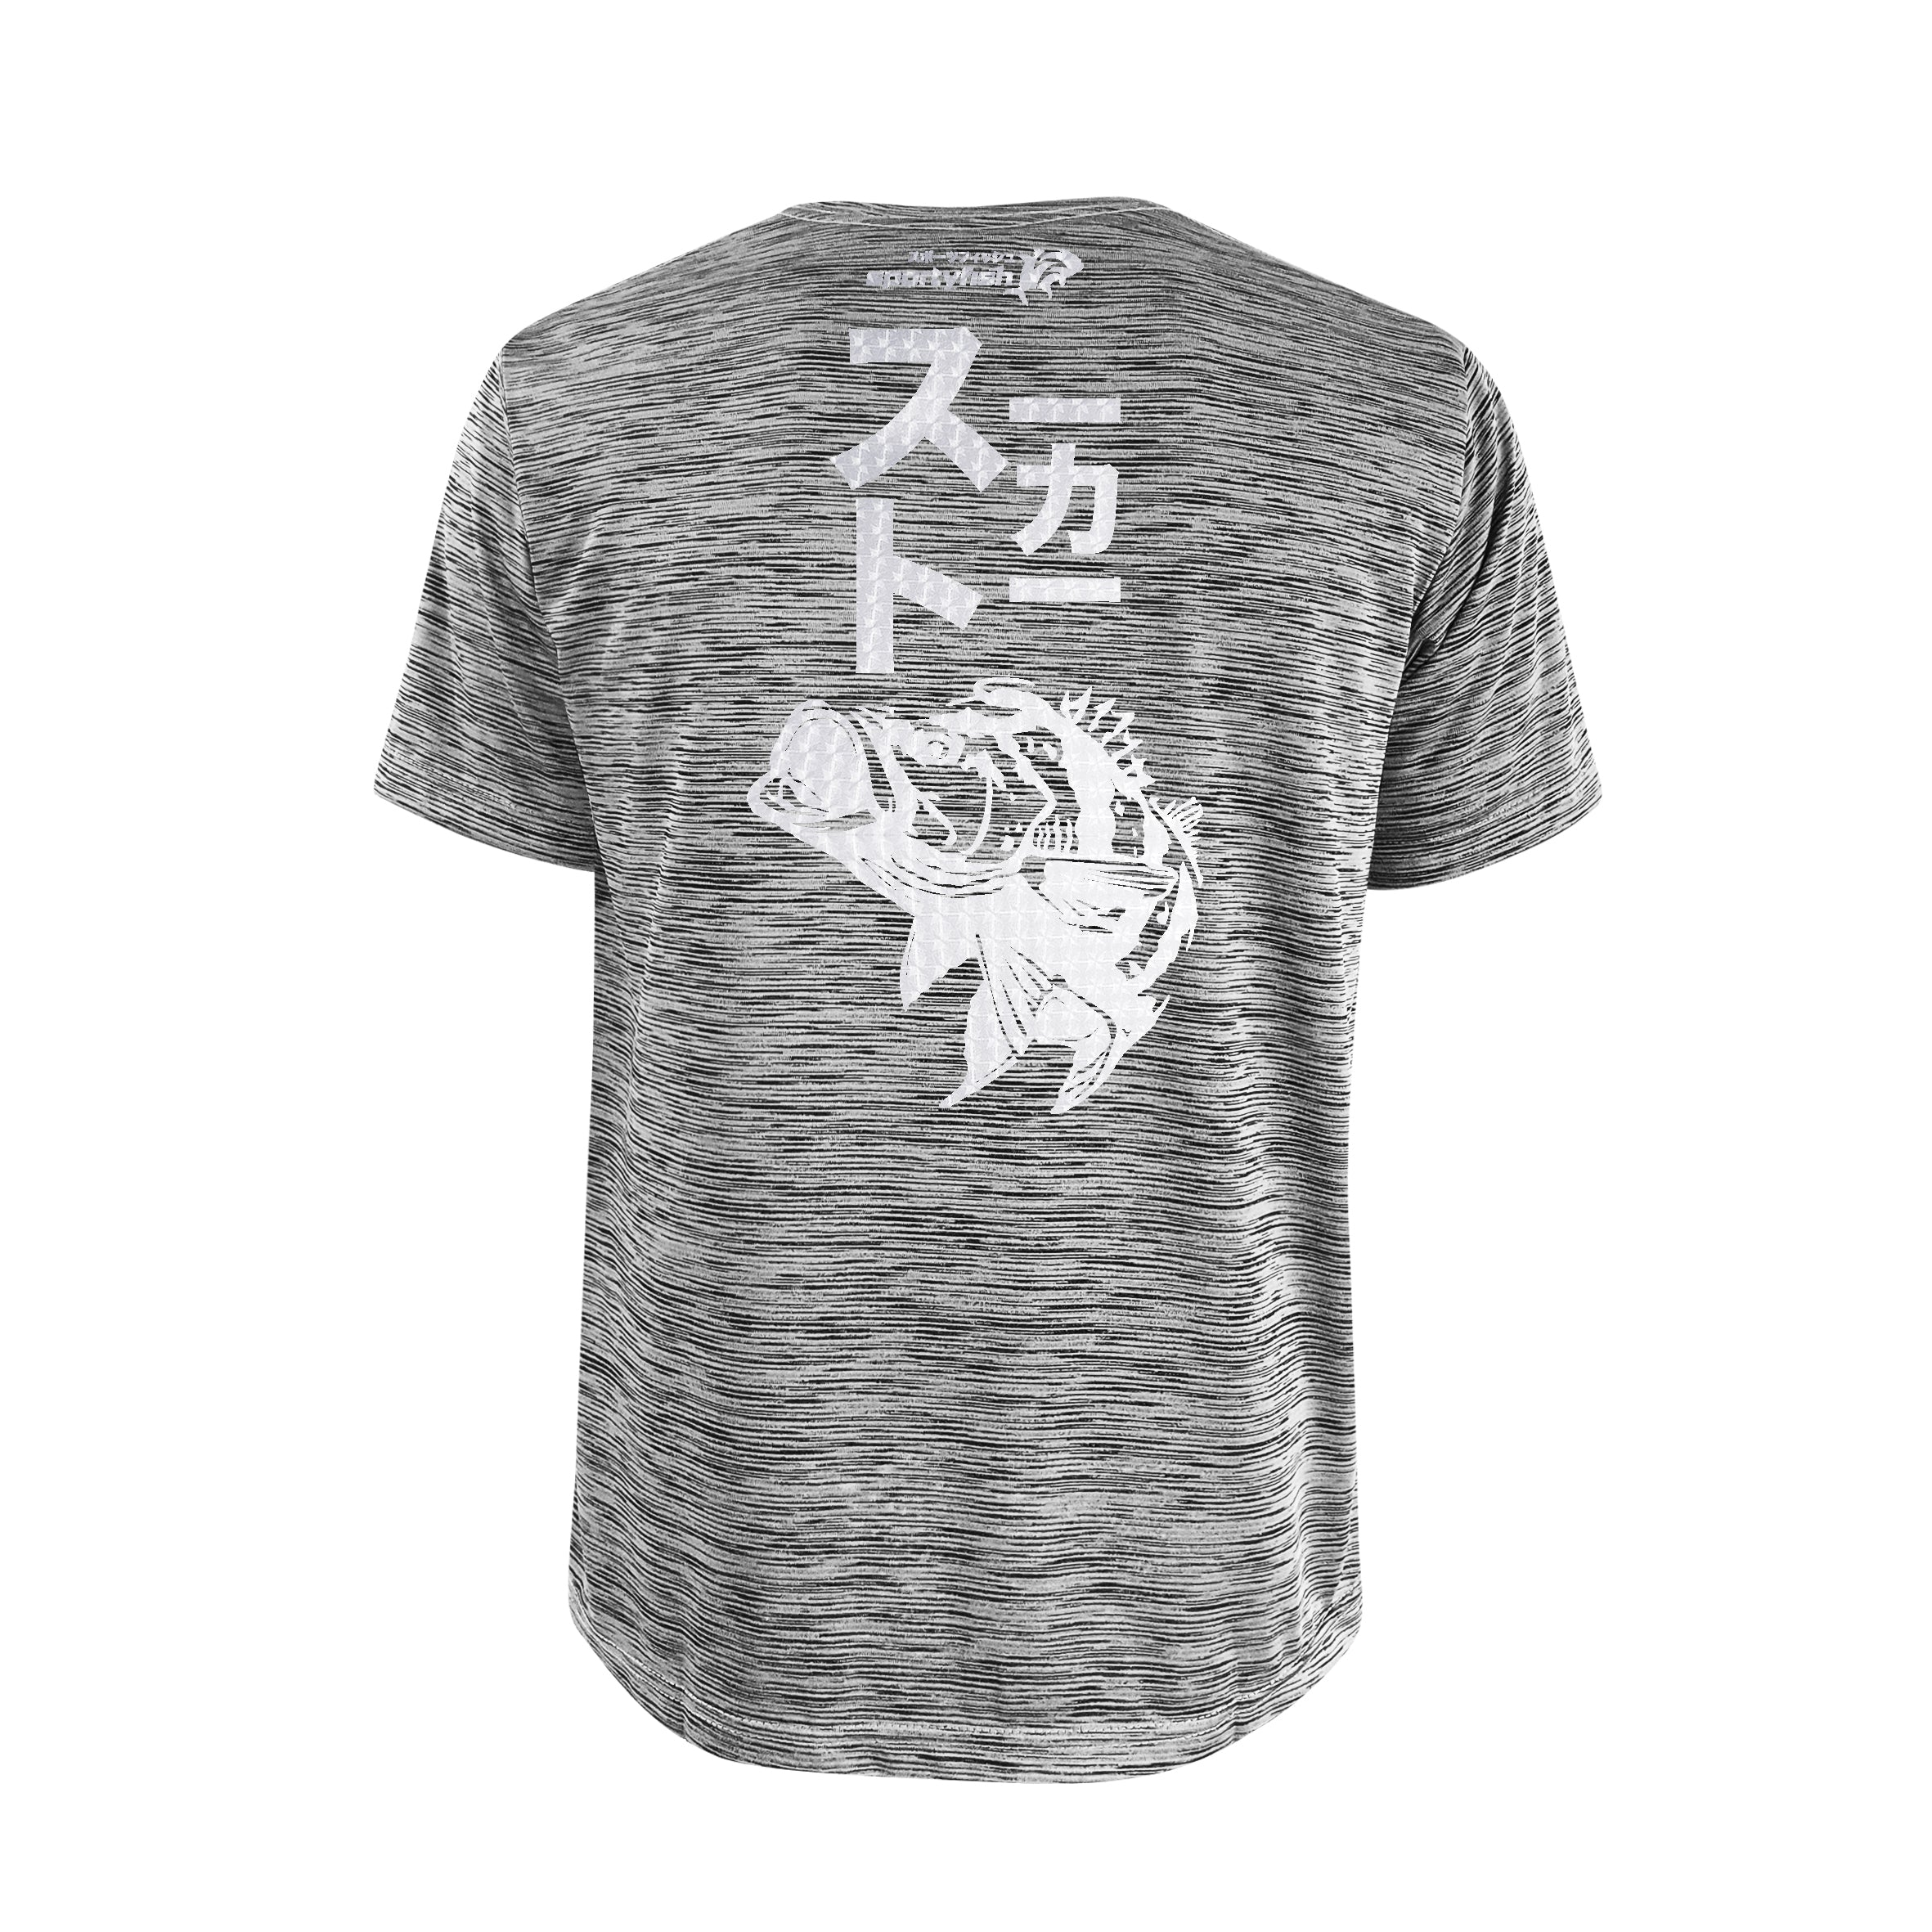 Bold Series Grey T-shirt(SS): The Peacock Bass(Stealth Stalker)(In Japanese Words)